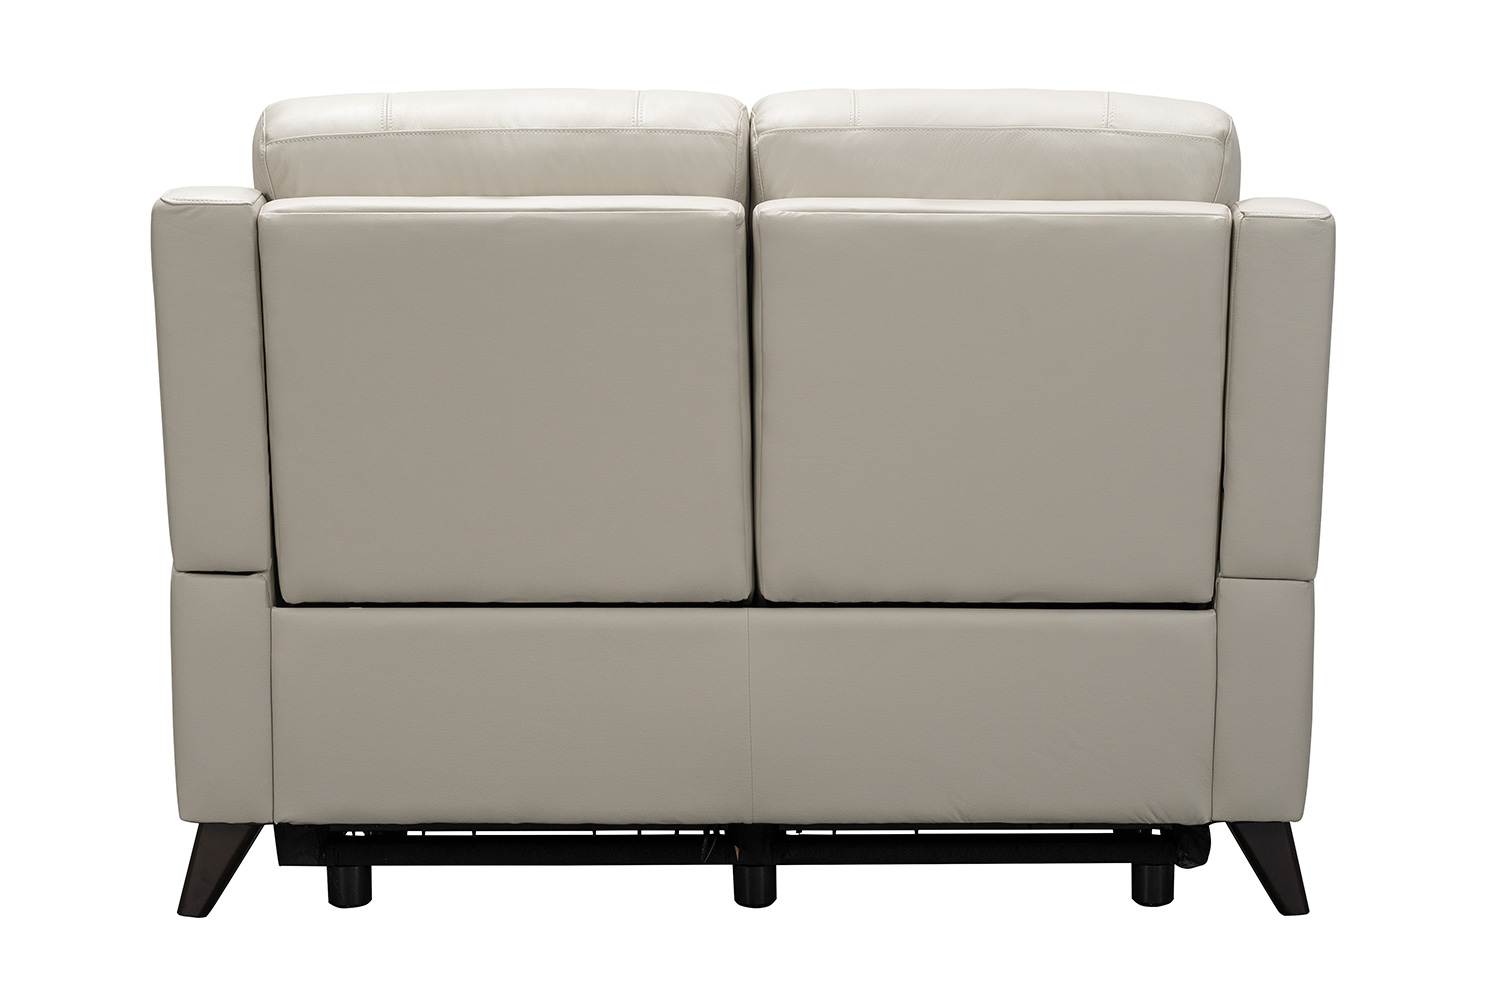 Barcalounger Kester Power Reclining Loveseat with Power Head Rests - Laurel Cream/Leather match